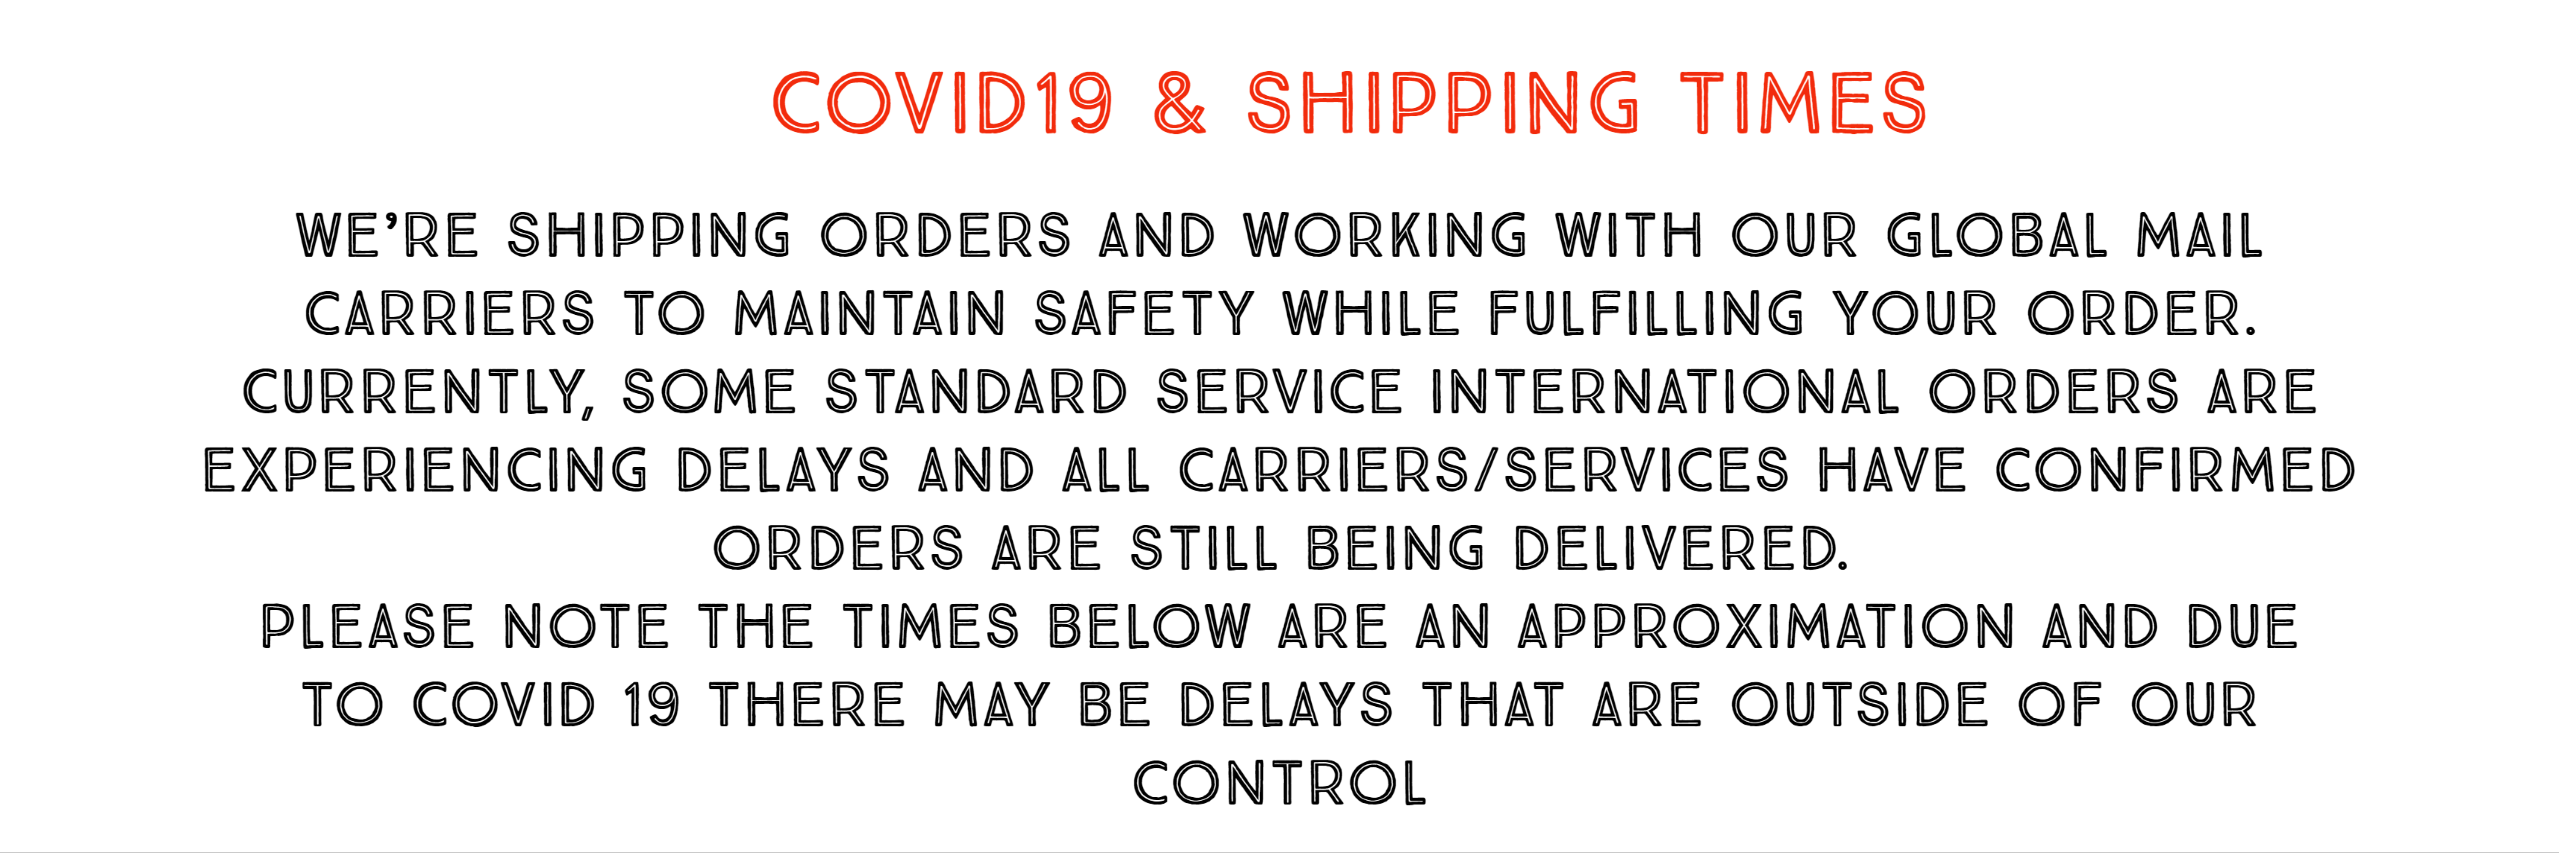 COVID19 Shipping Update